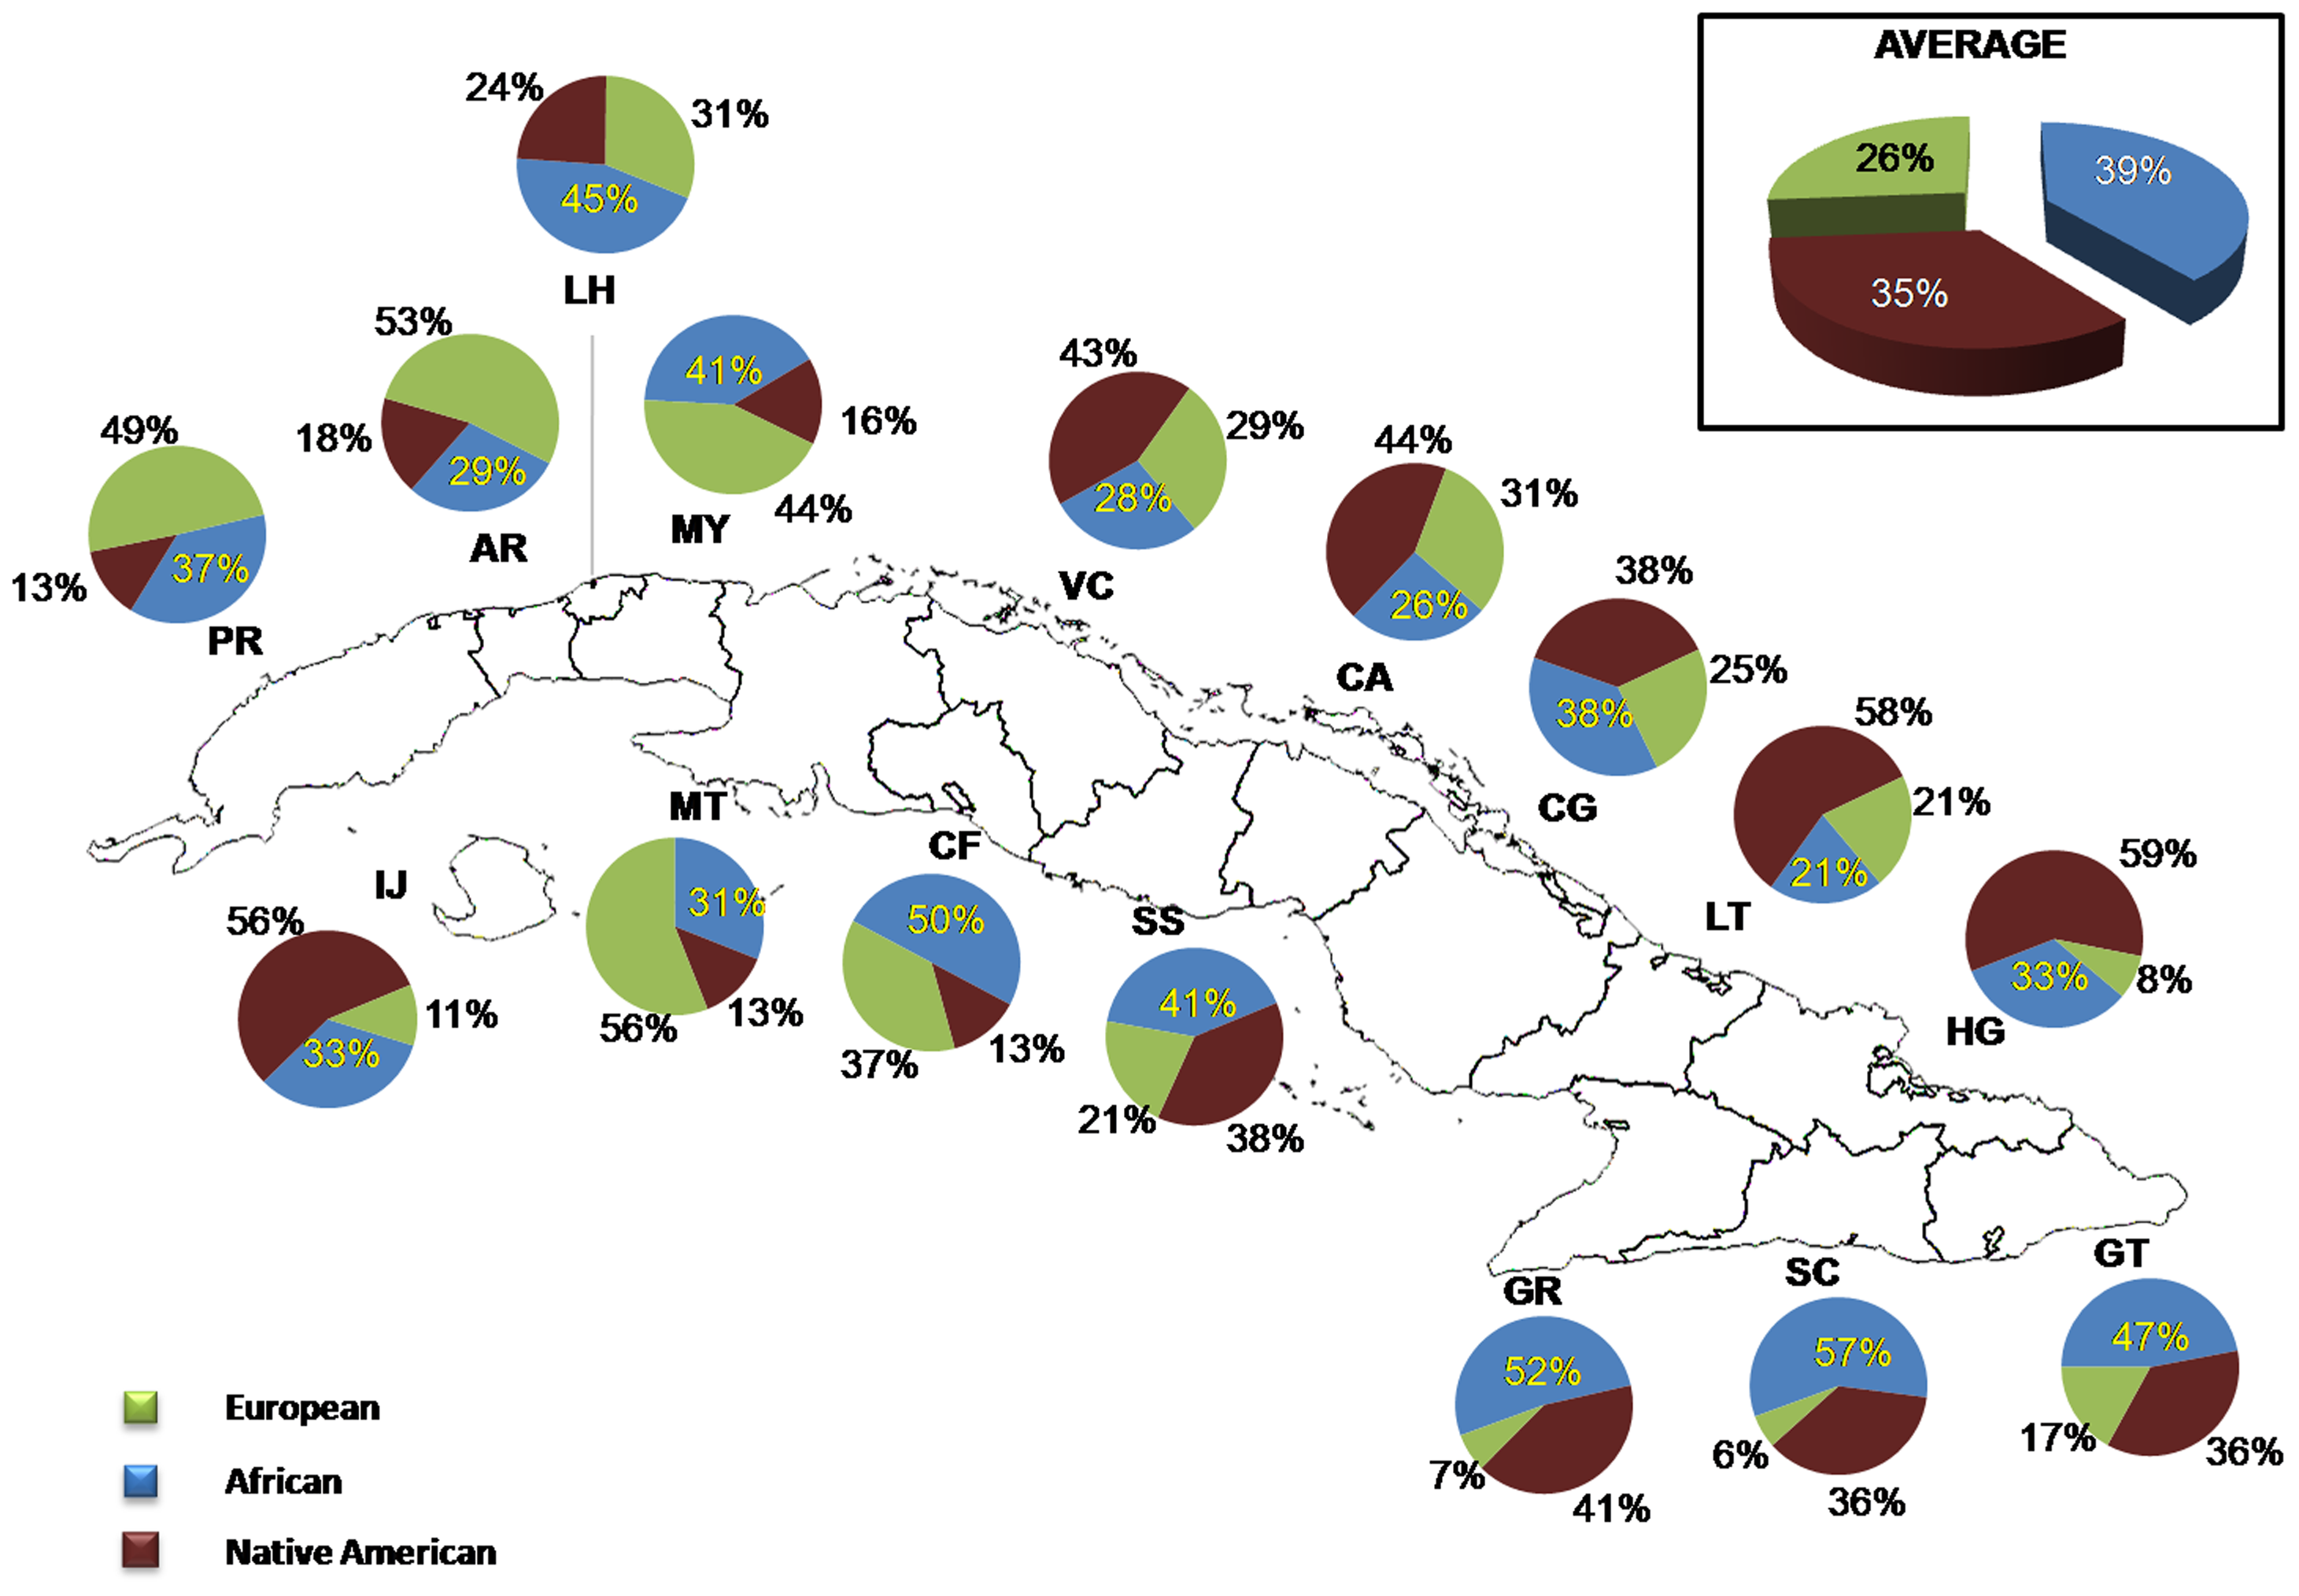 Distribution of ancestral contributions in the total sample and stratified by province as inferred from mtDNA markers.